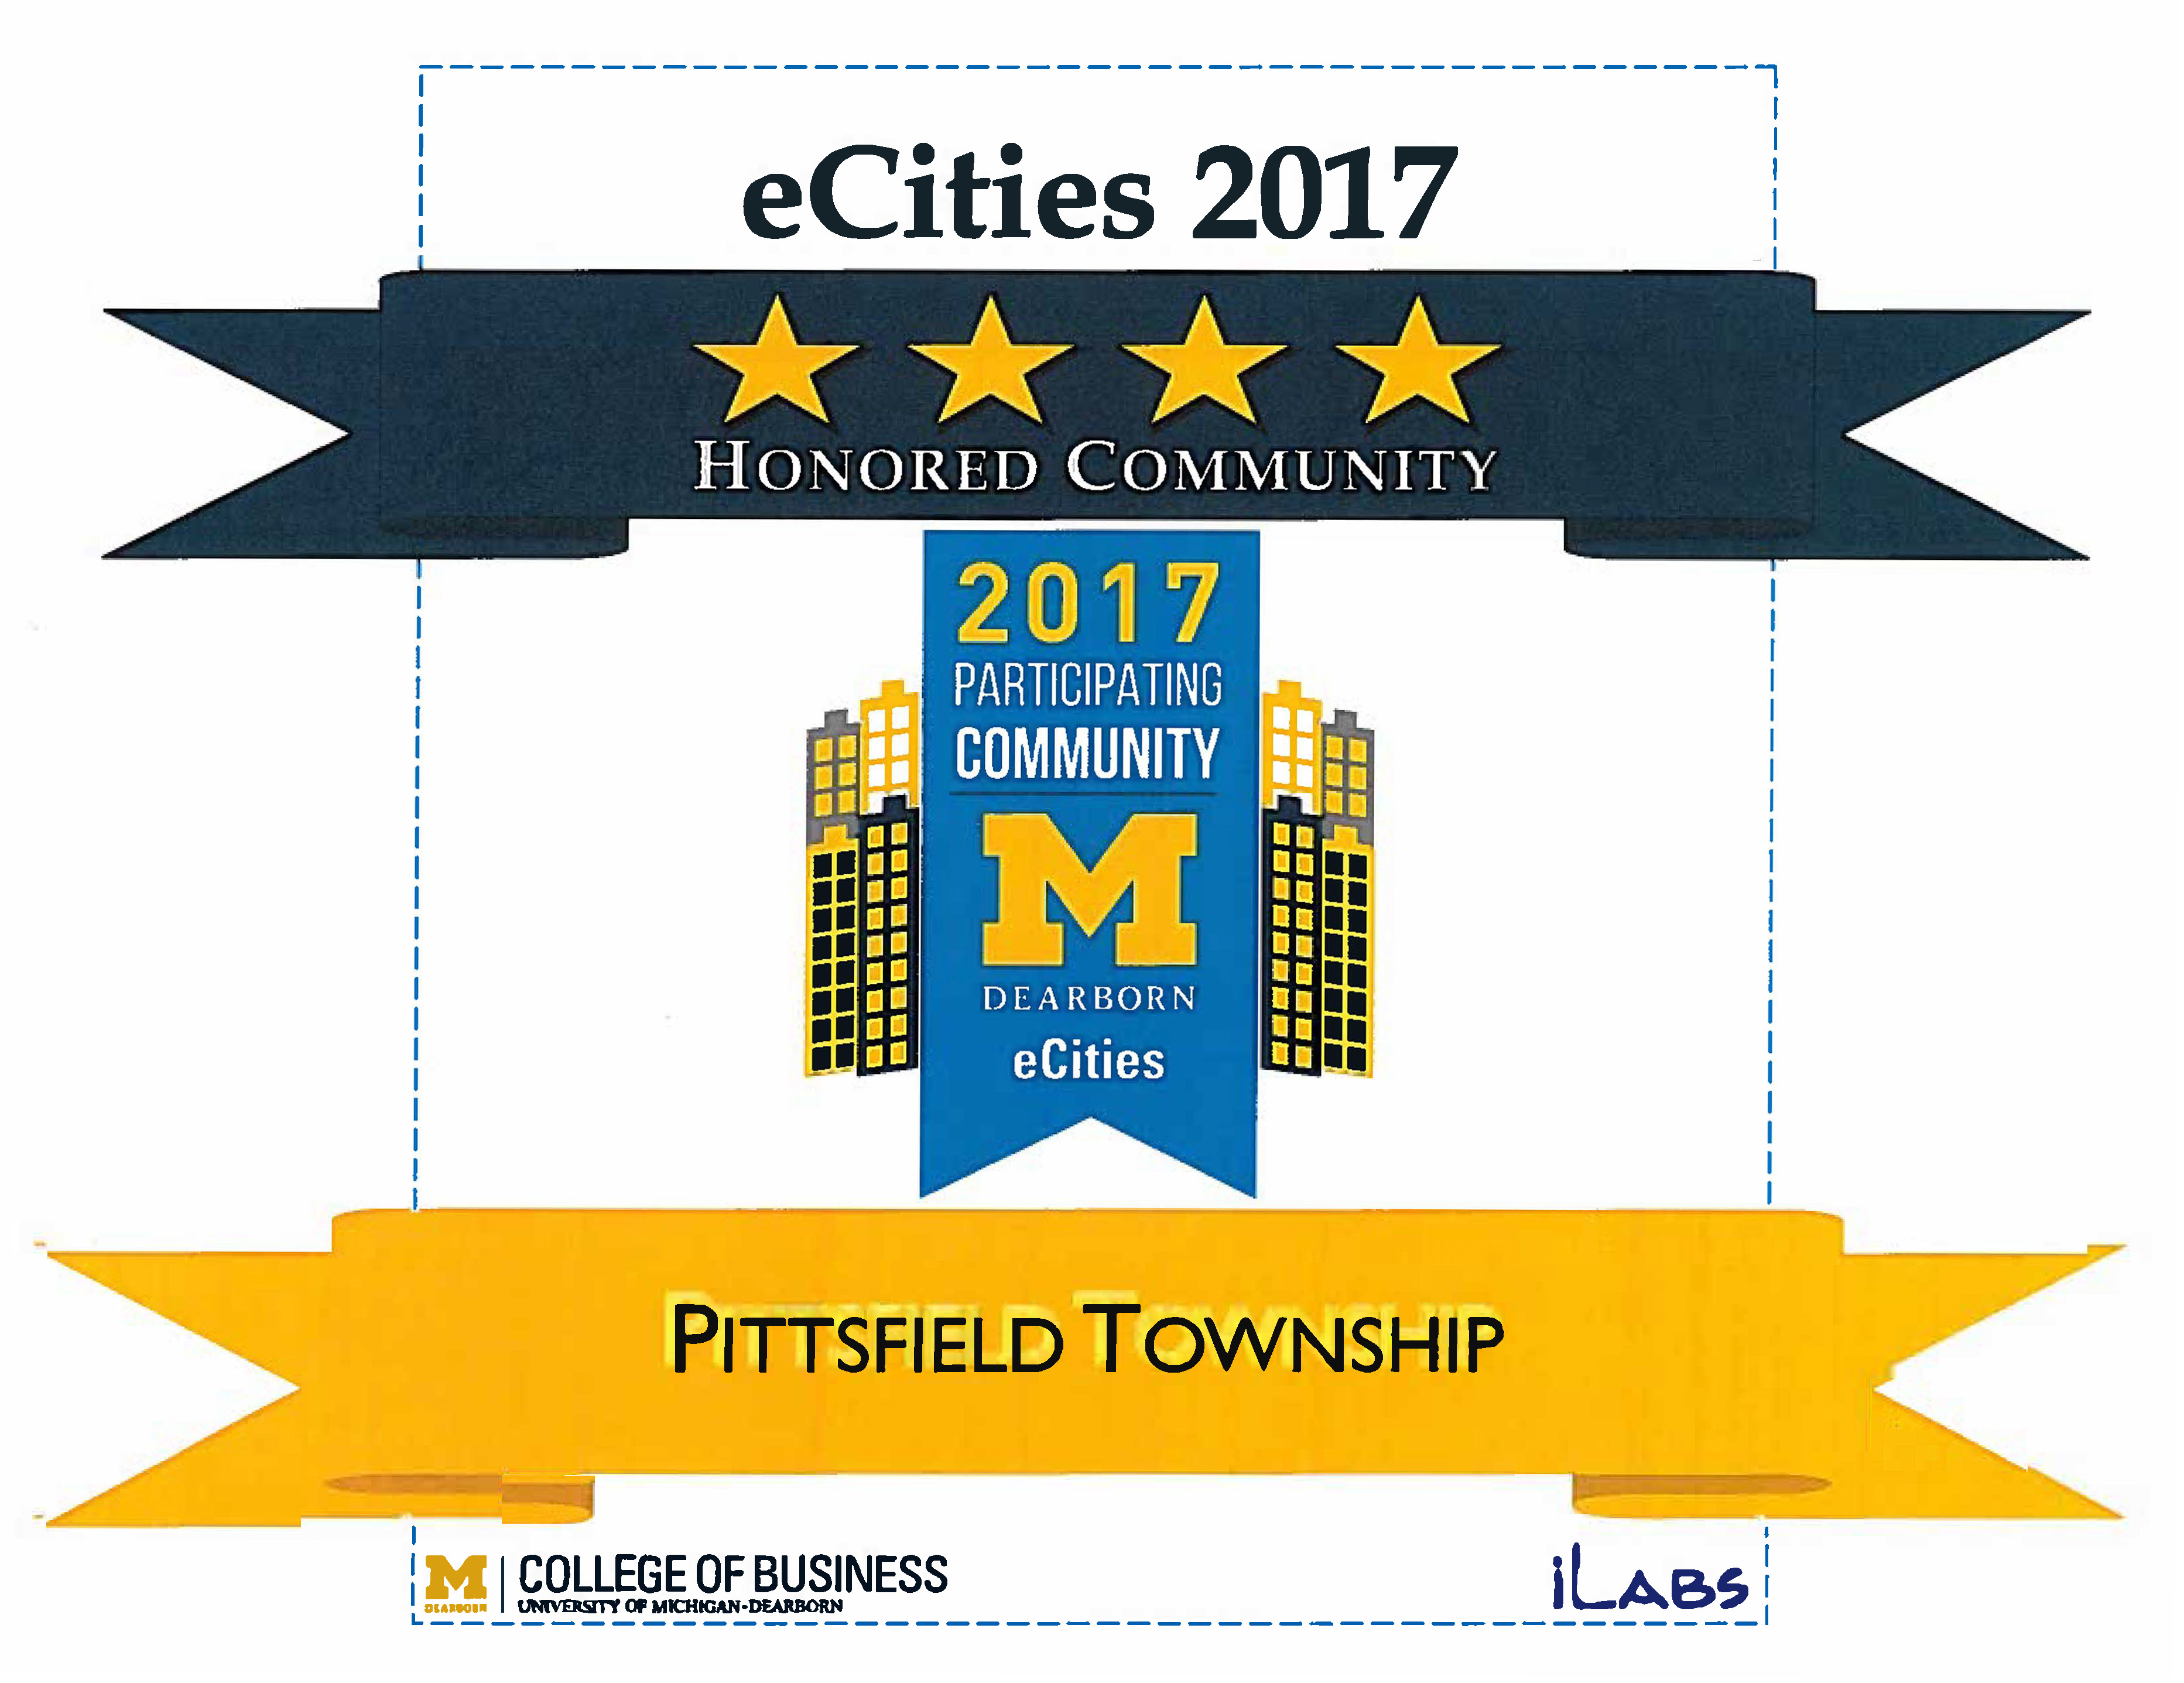 eCities 2017 Award